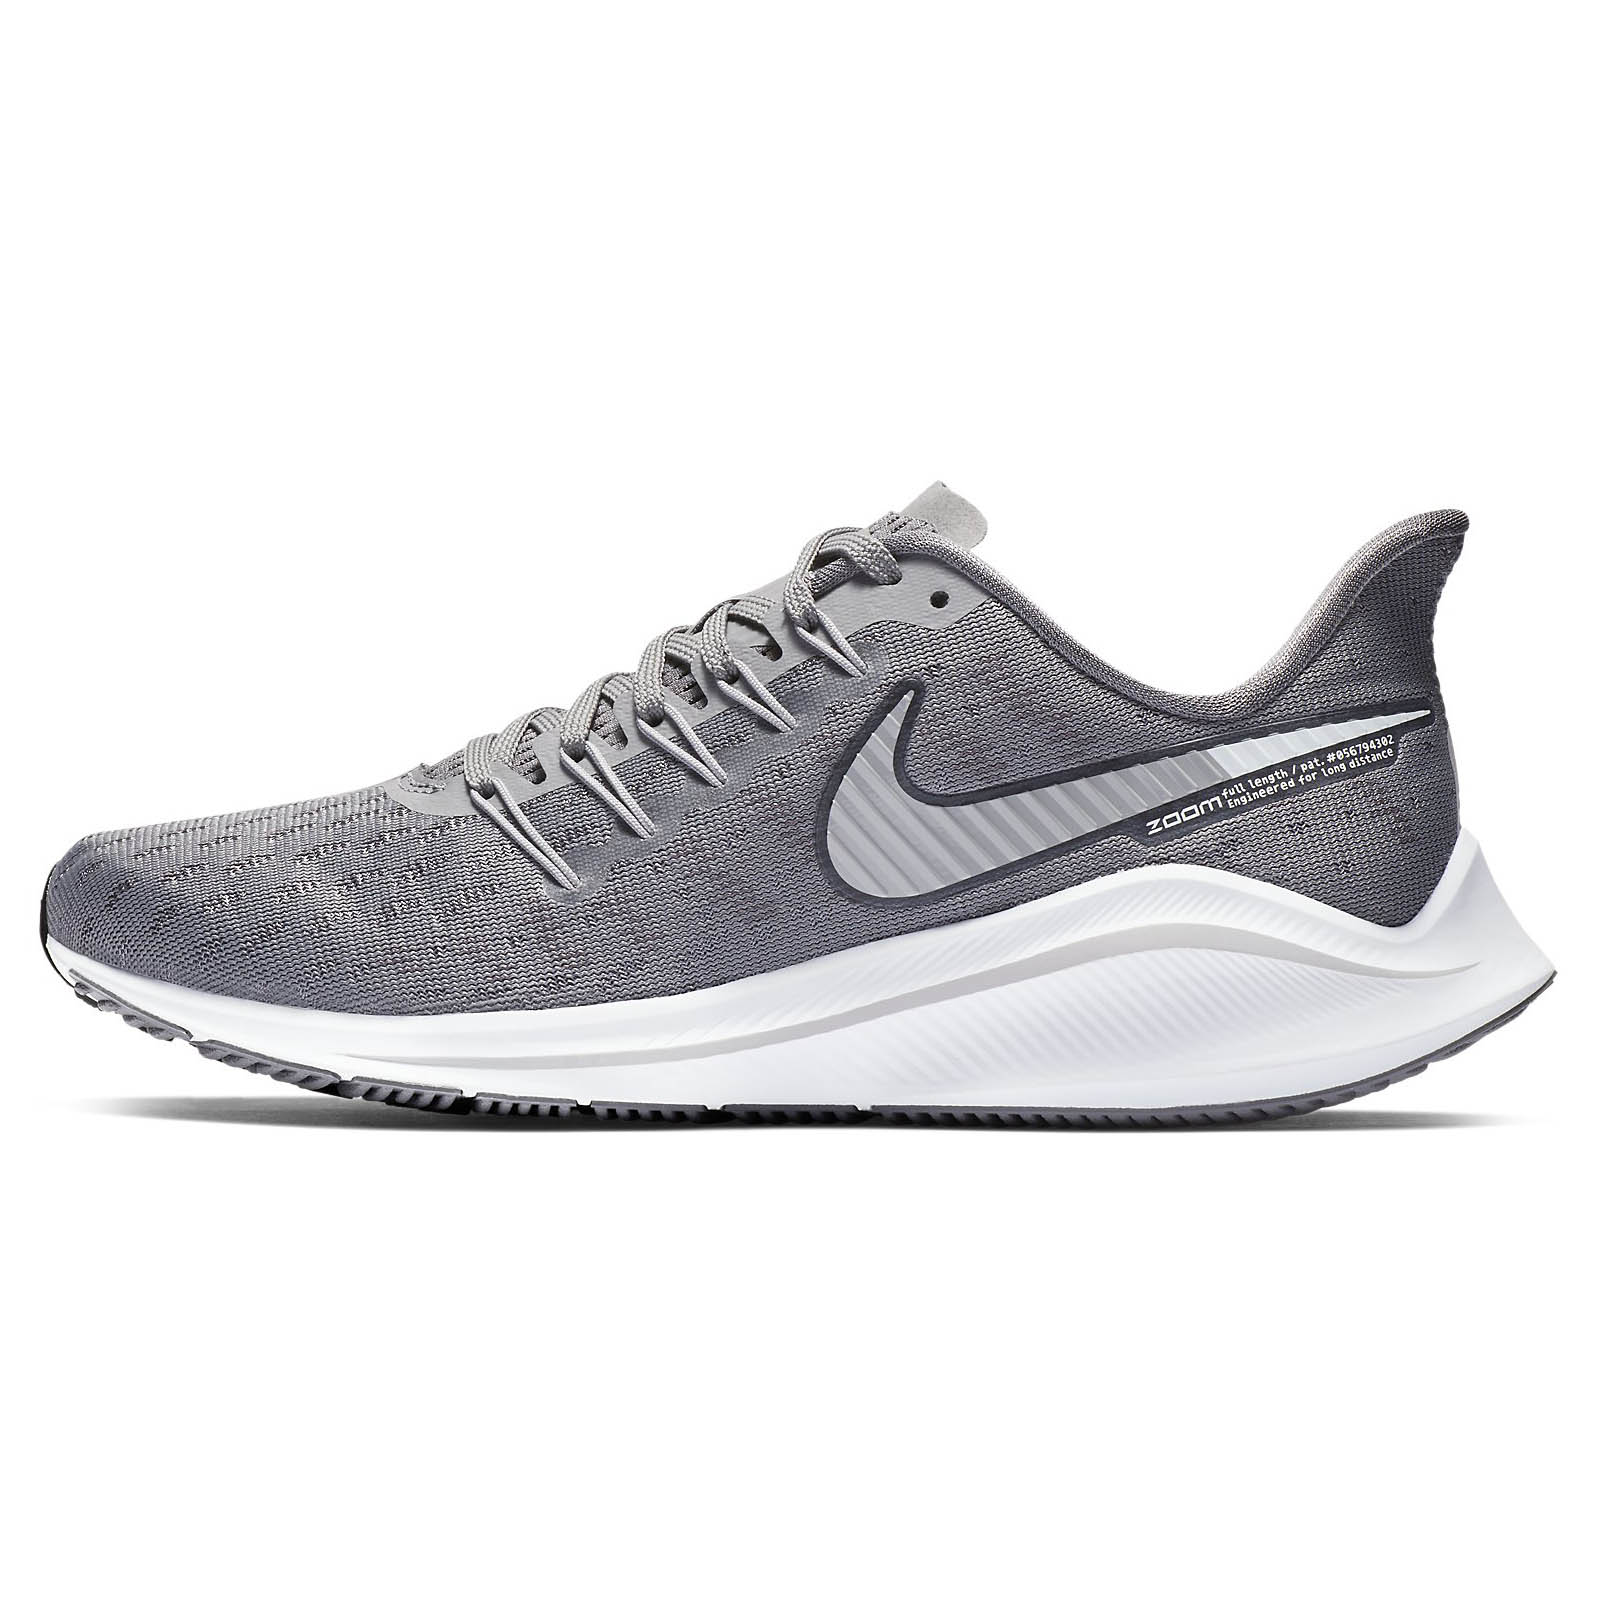 7606a1f273d25 NIKE WMNS AIR ZOOM VOMERO 14 - gallery 0 ...